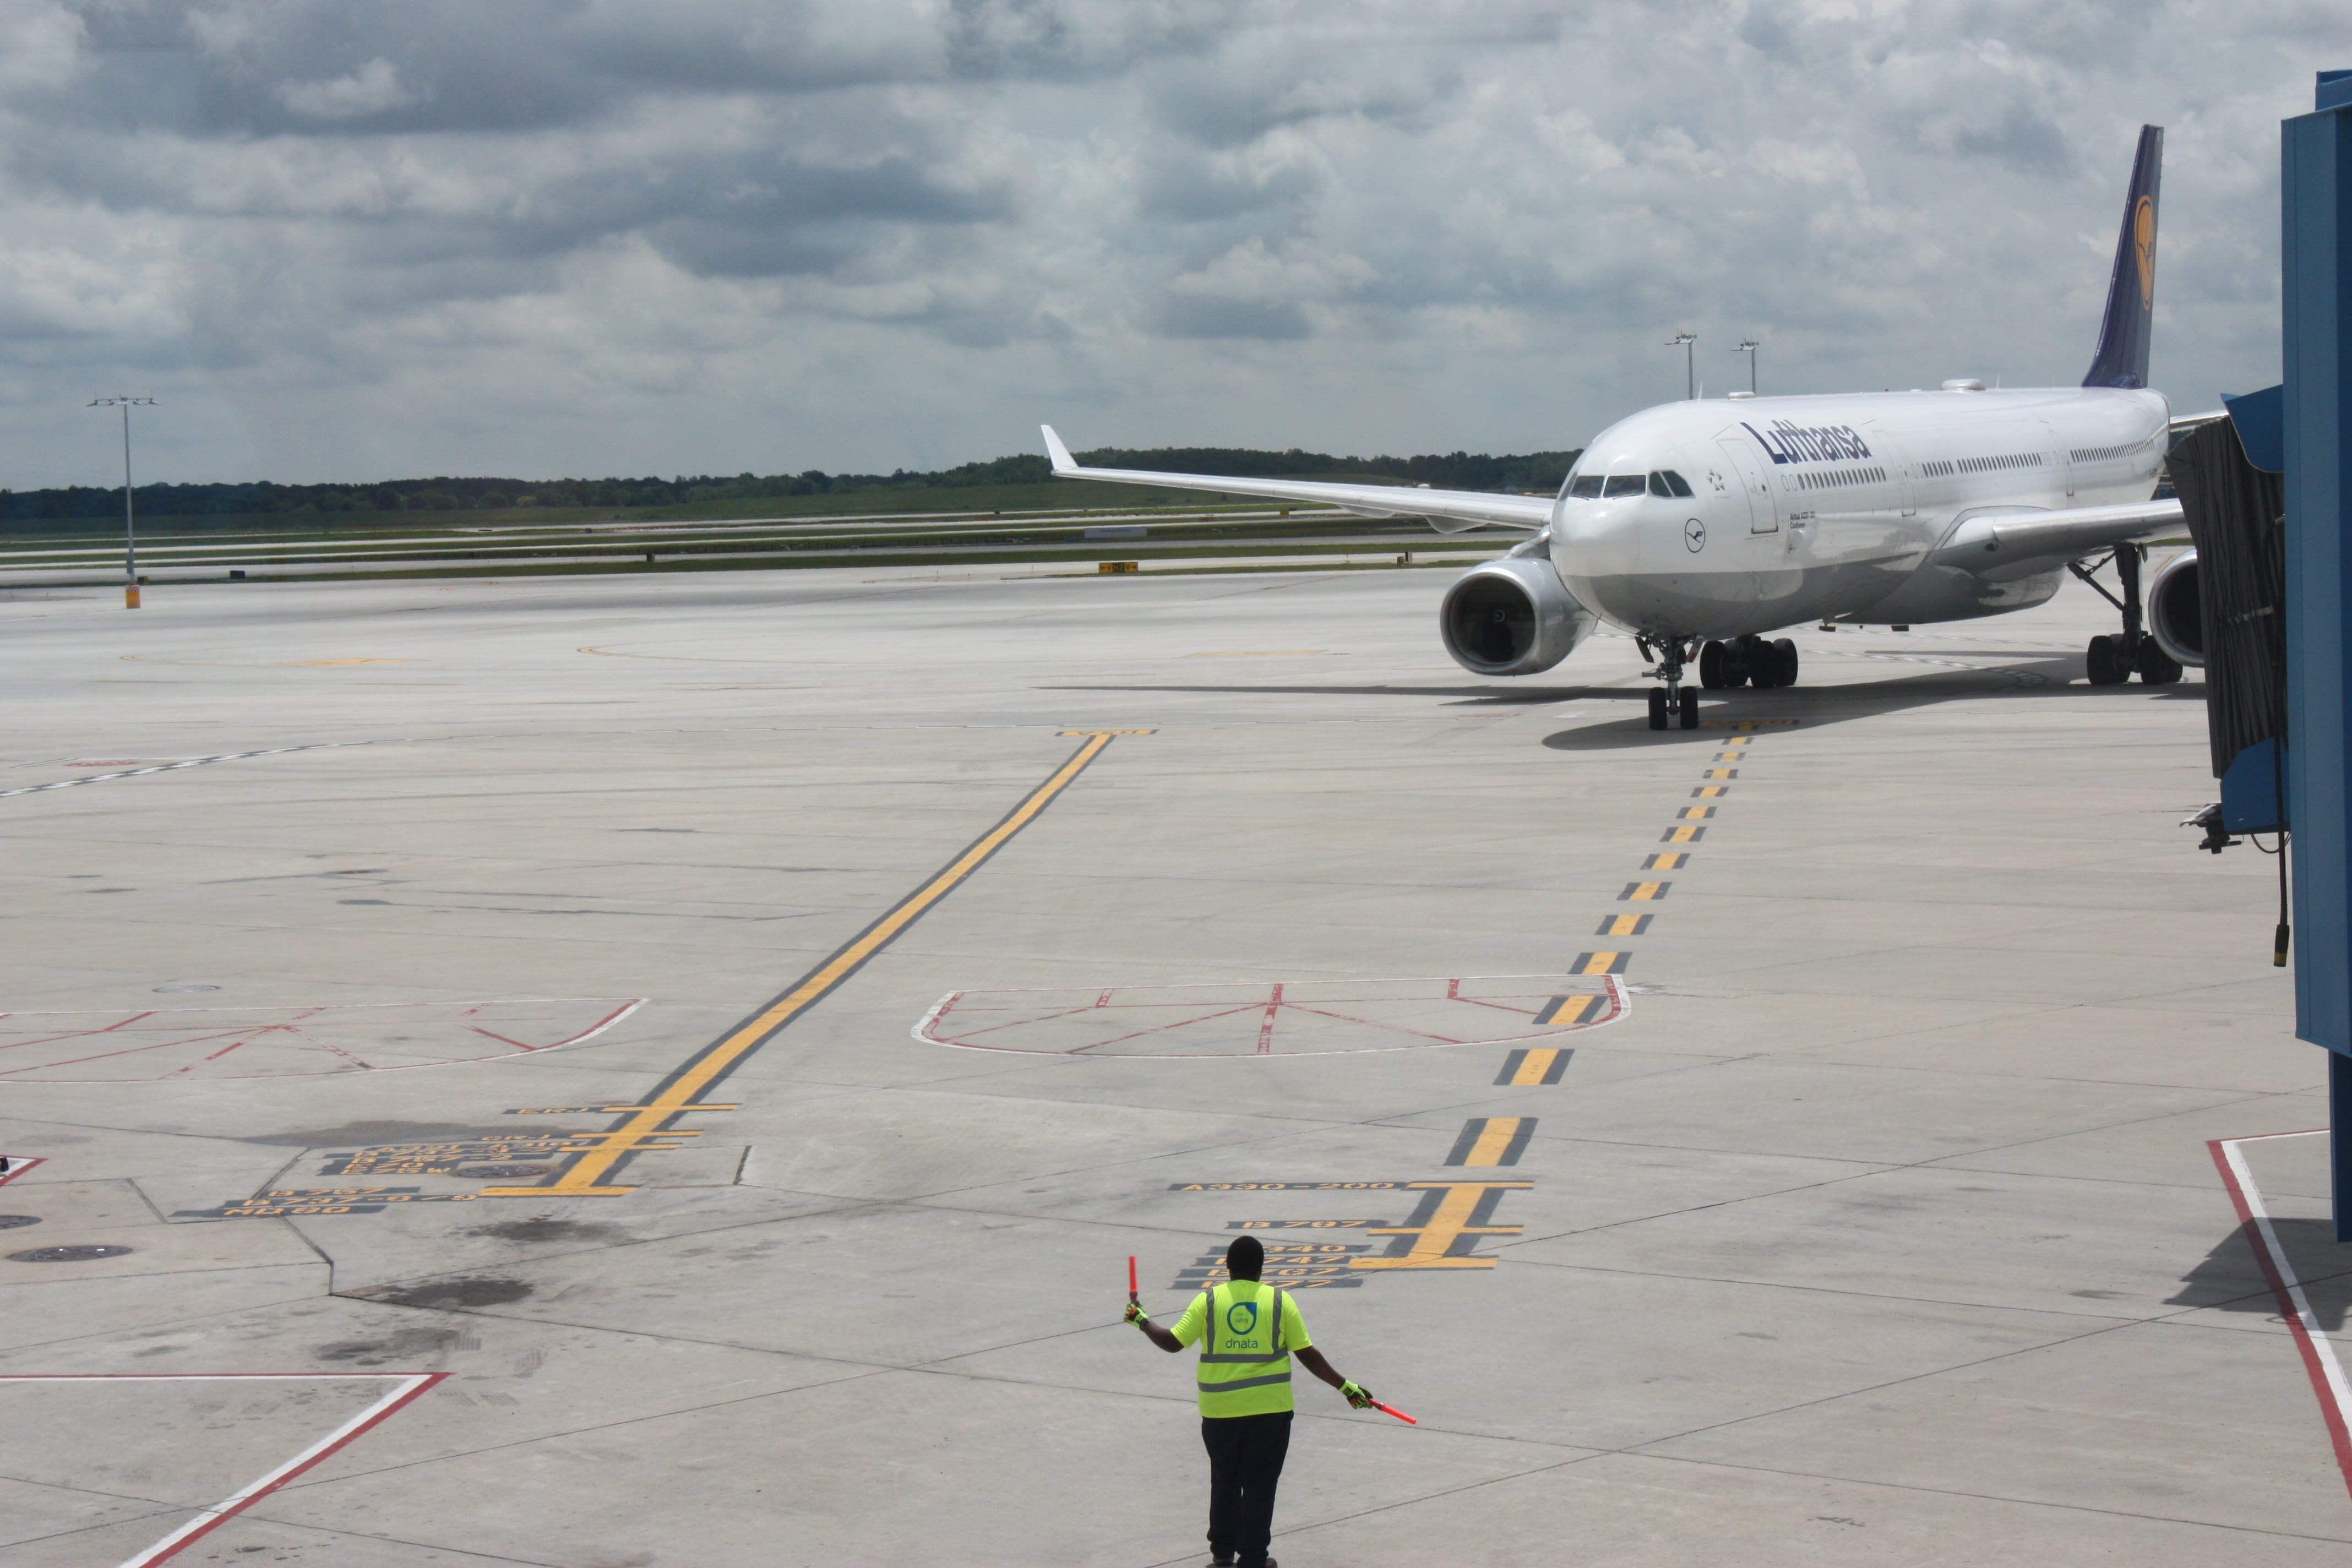 Arriving from Frankfurt, Lufthansa's flight taxis to its gate at Detroit Metropolitan Wayne County Airport.